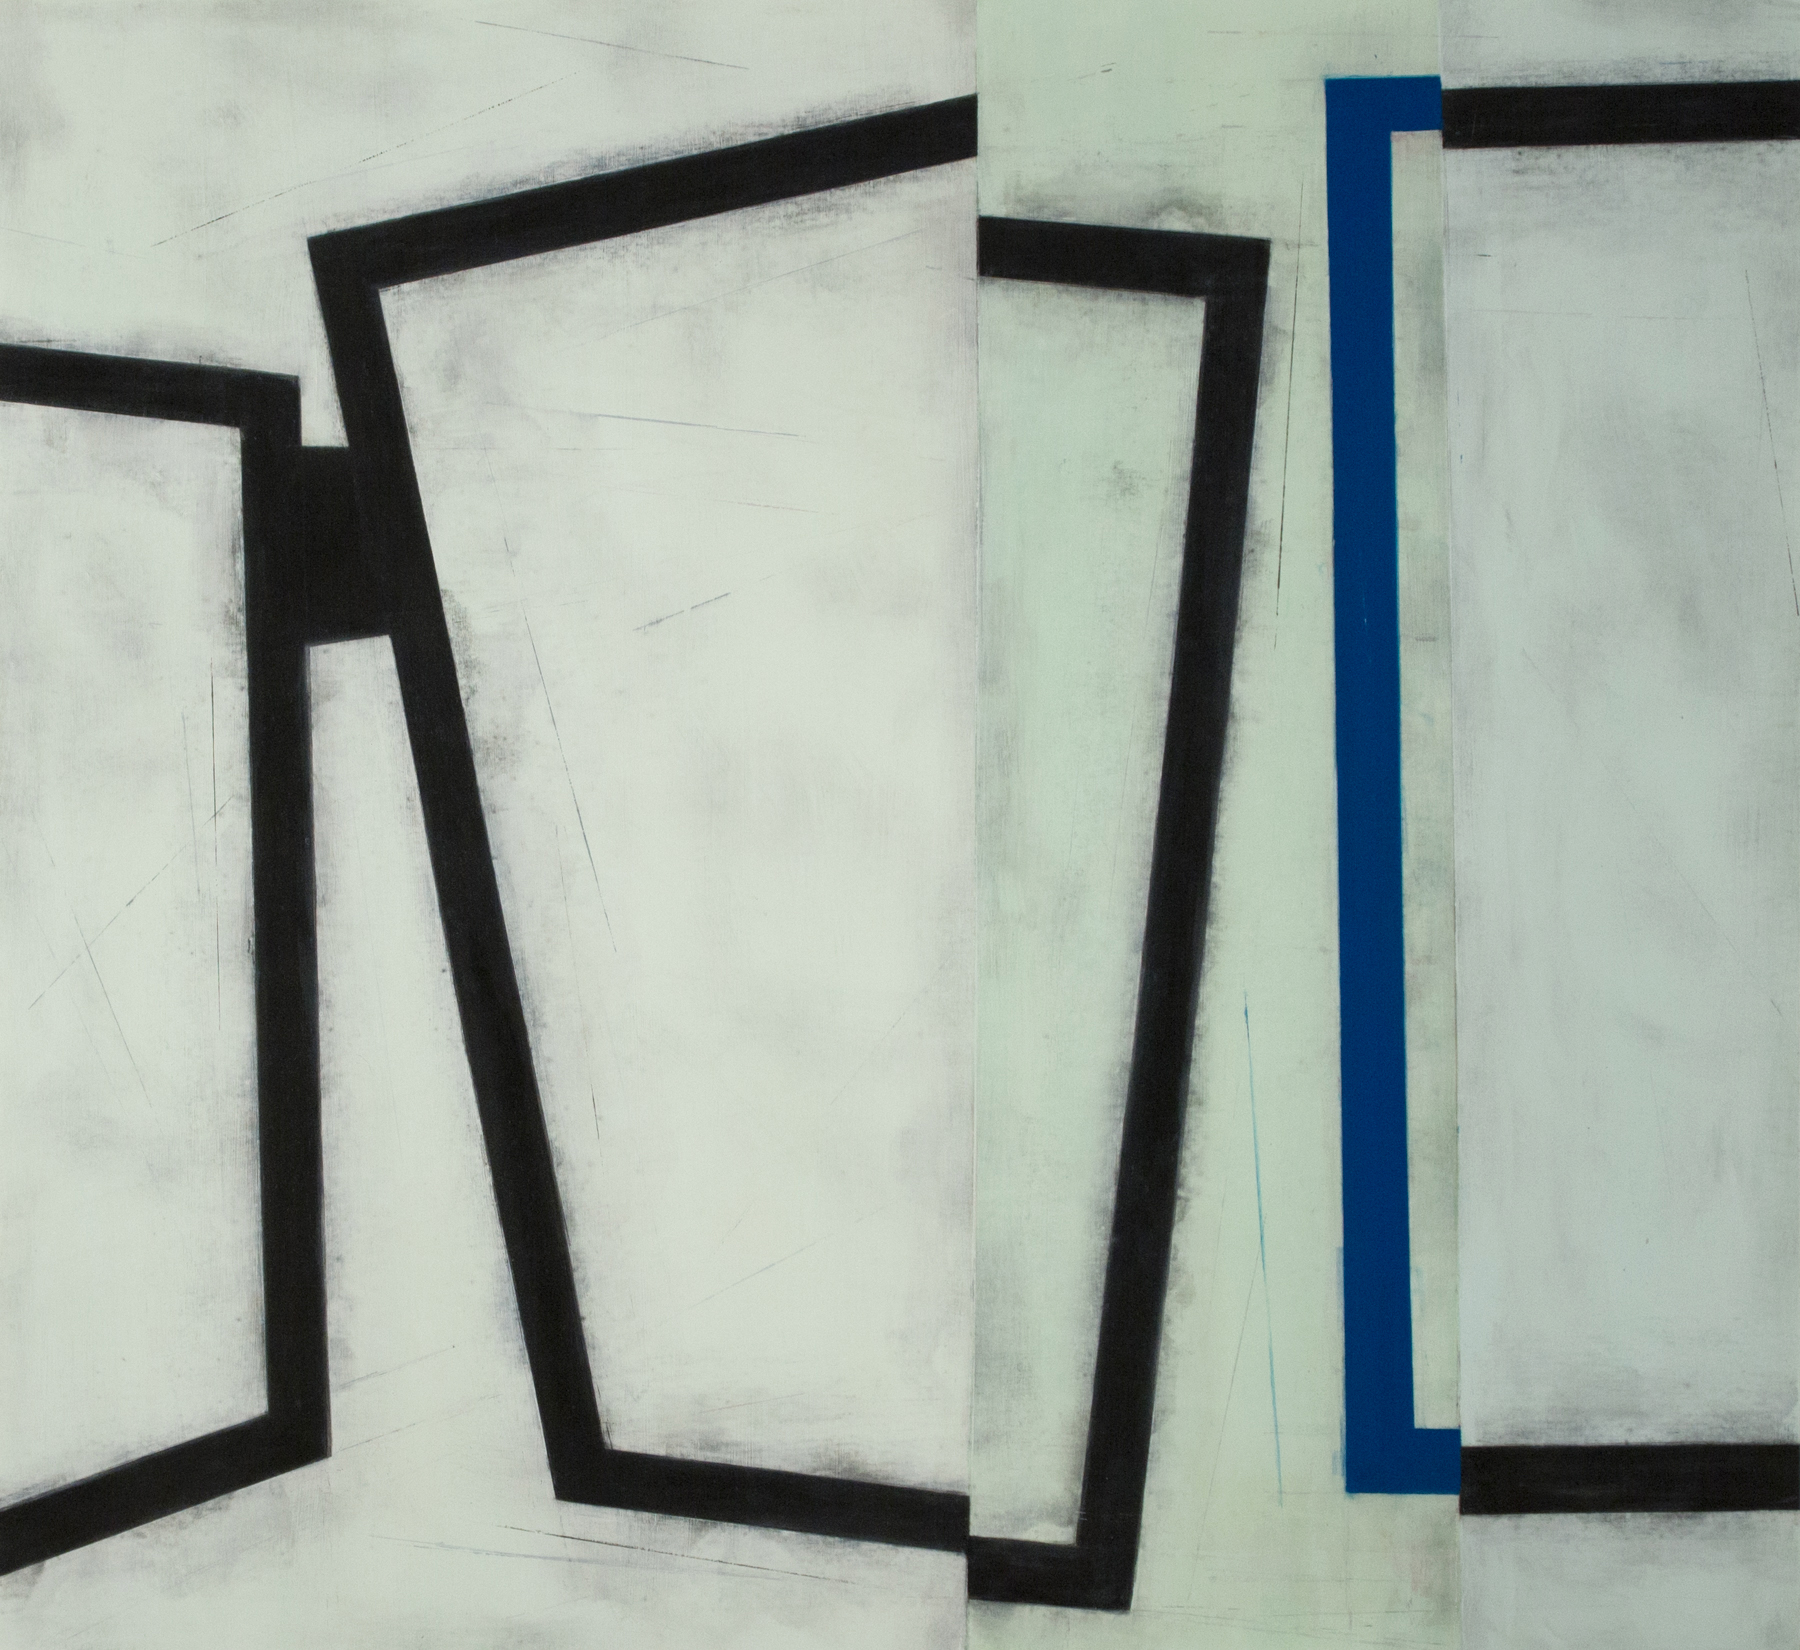 Mobility of Frames D9  |  2017  |  oil on Mylar  |  29.5 x 32 inches